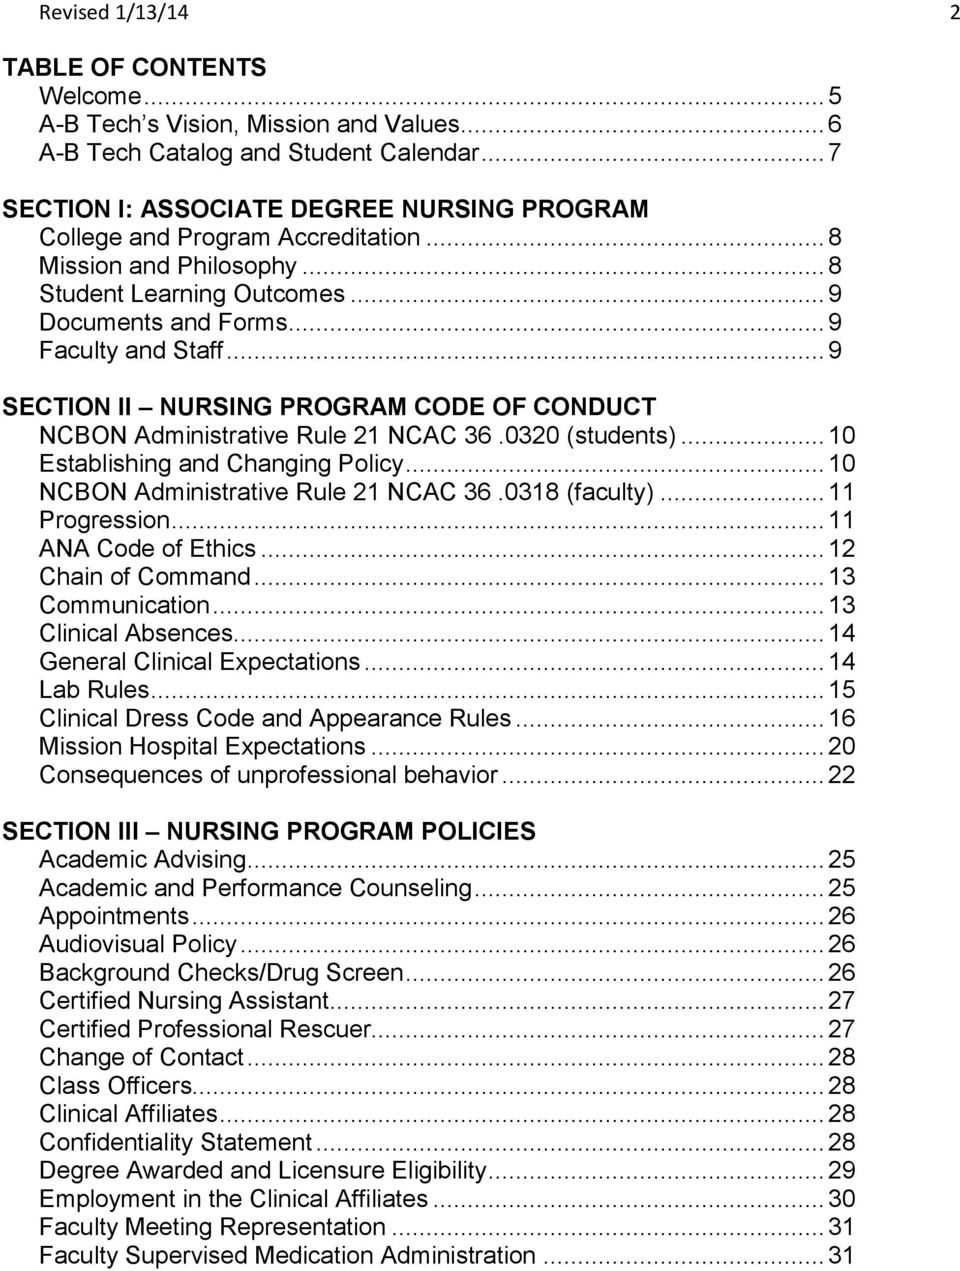 .. 9 SECTION II NURSING PROGRAM CODE OF CONDUCT NCBON Administrative Rule 21 NCAC 36.0320 (students)... 10 Establishing and Changing Policy... 10 NCBON Administrative Rule 21 NCAC 36.0318 (faculty).